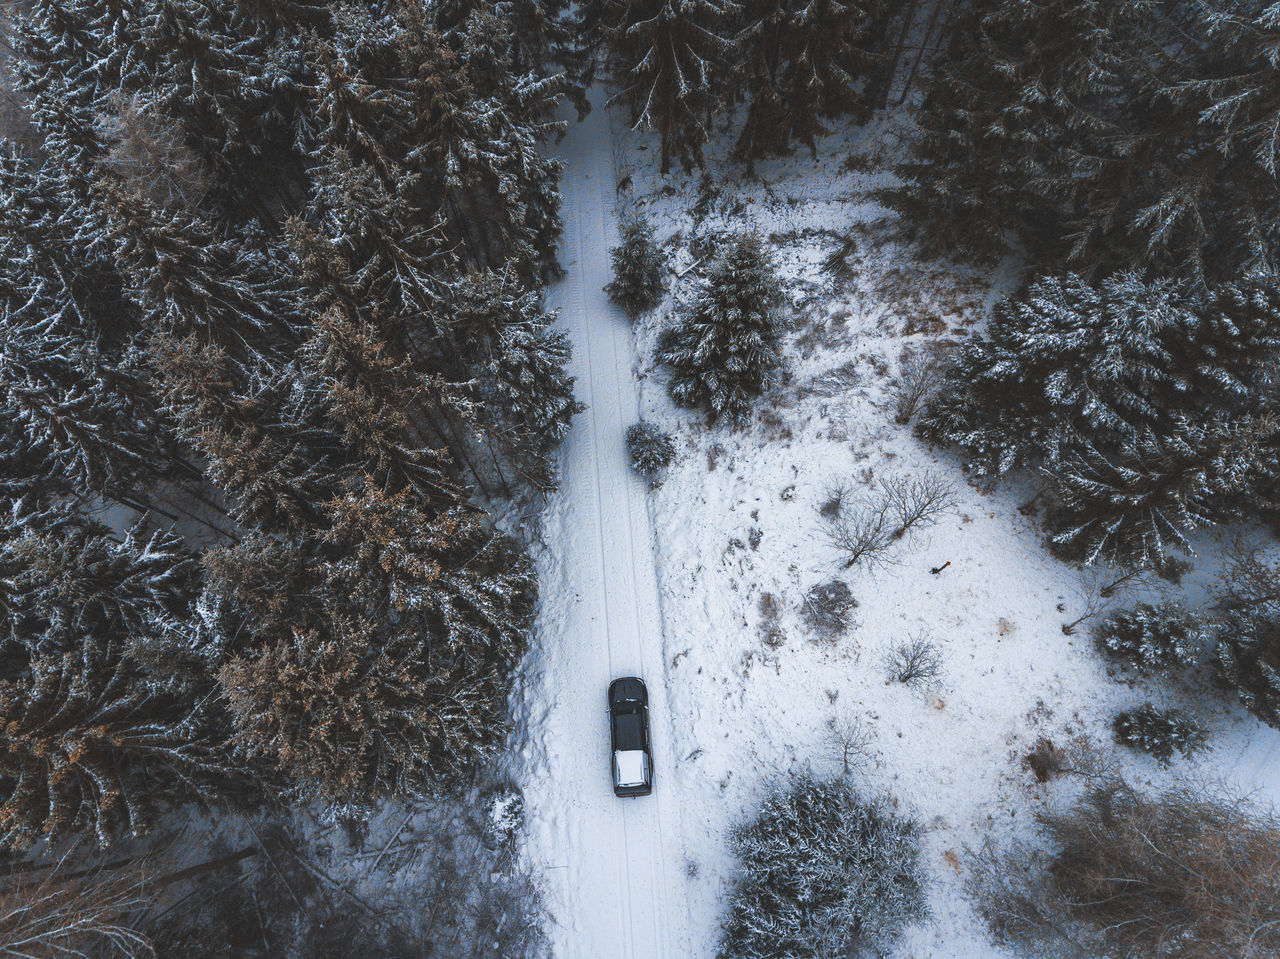 adveture areal view ArealPhotography beauty in Nature cold temperature day forest Nature no people offroad offroad adventure outdoors snow SUV Tranquility Transportation Travel Tree truck Weather Winter Flying High